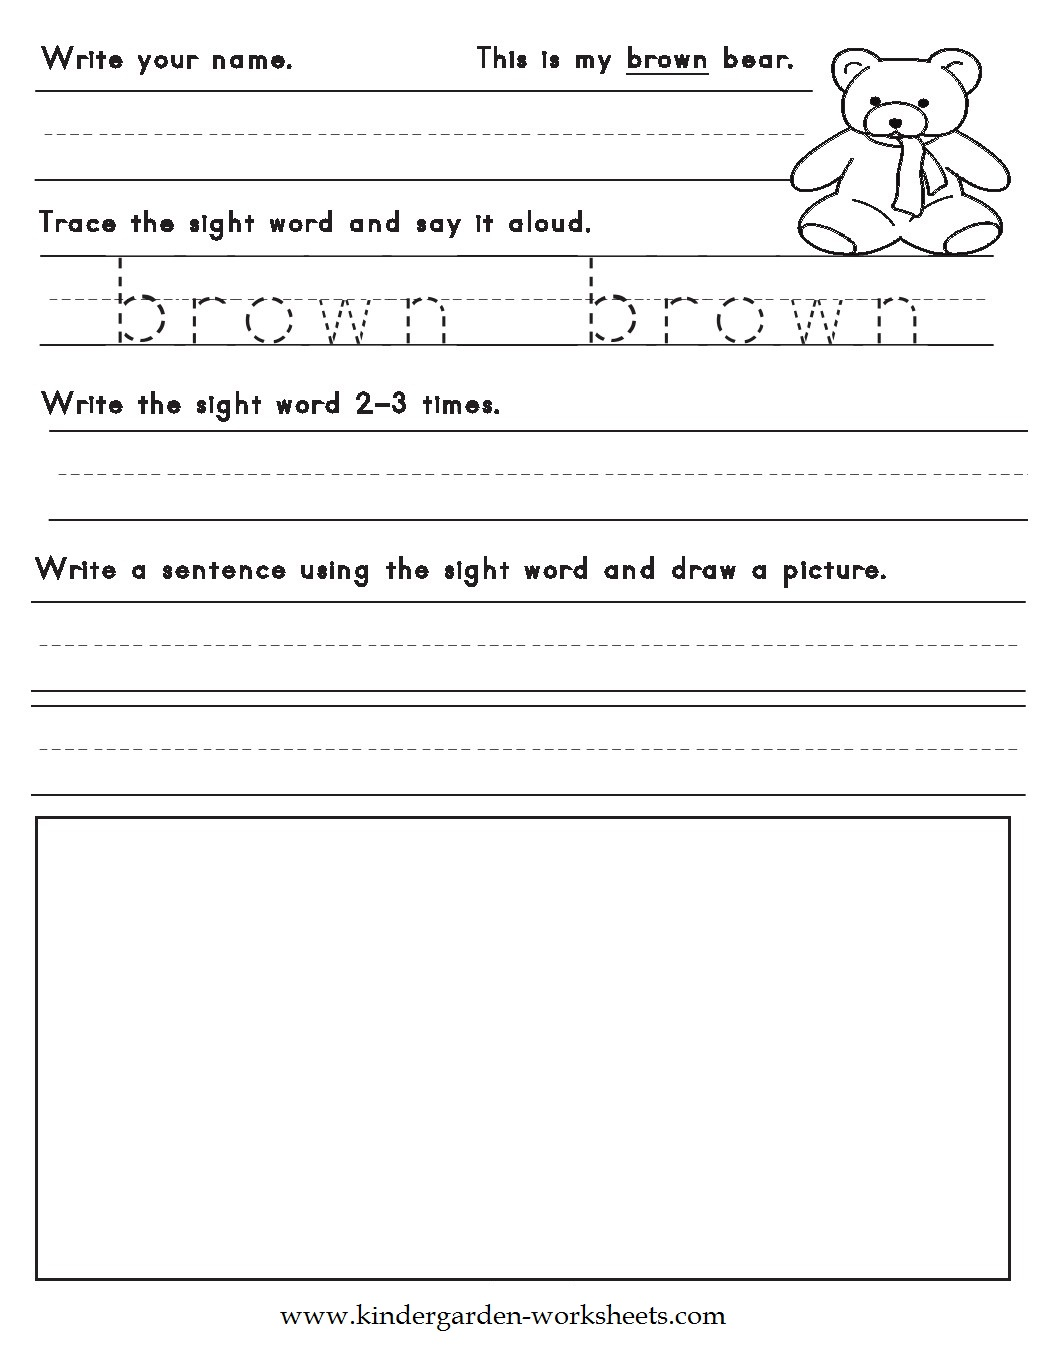 Worksheet Color Word Worksheets Grass Fedjp Worksheet